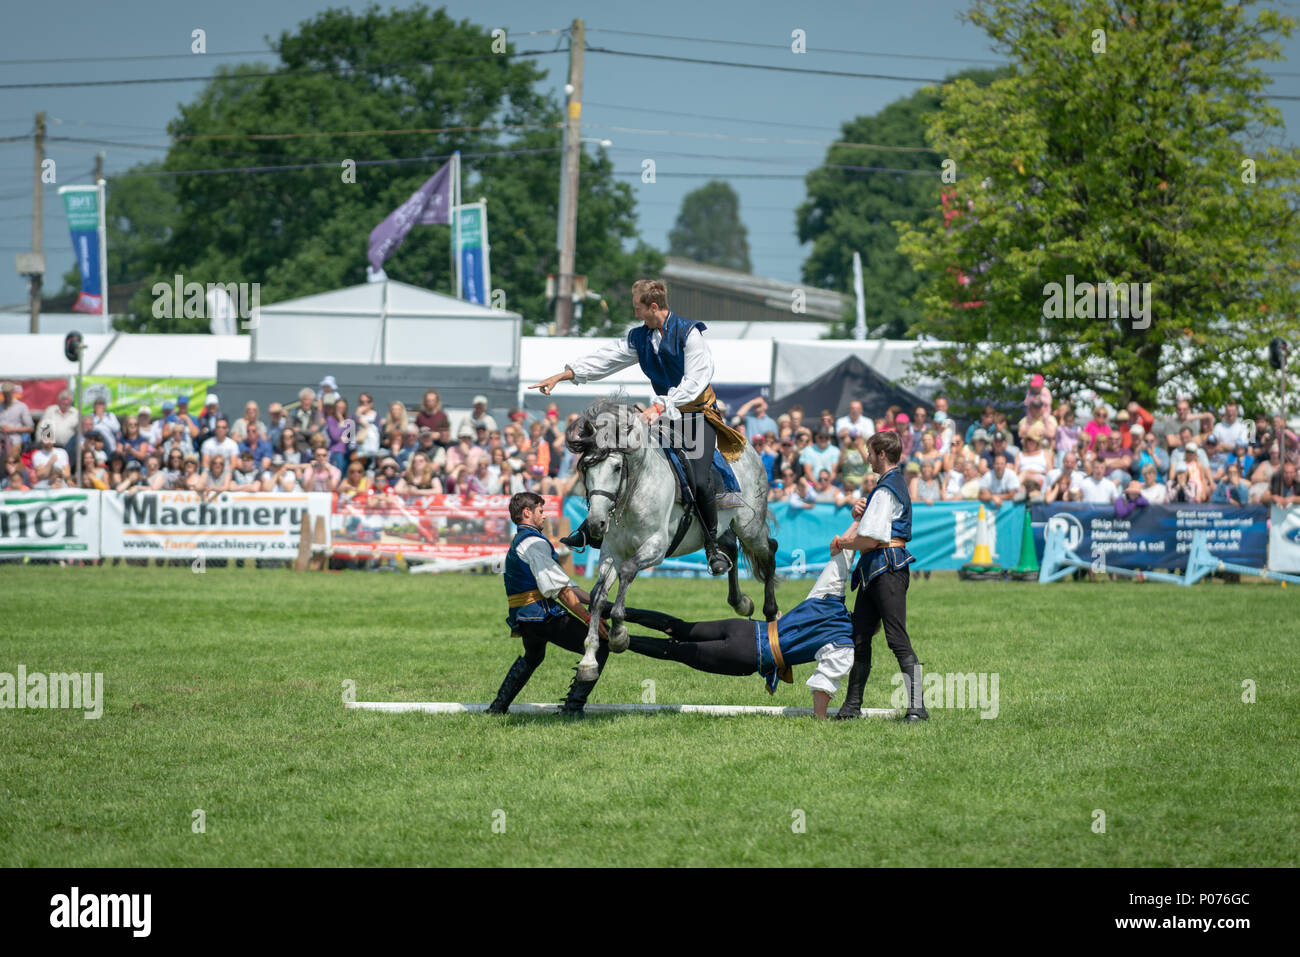 While riding a horse, a rider from the Atkinson Action Horses jumps over a man during a performance at the South Of England Show in Ardingly, Sussex, UK. - Stock Image